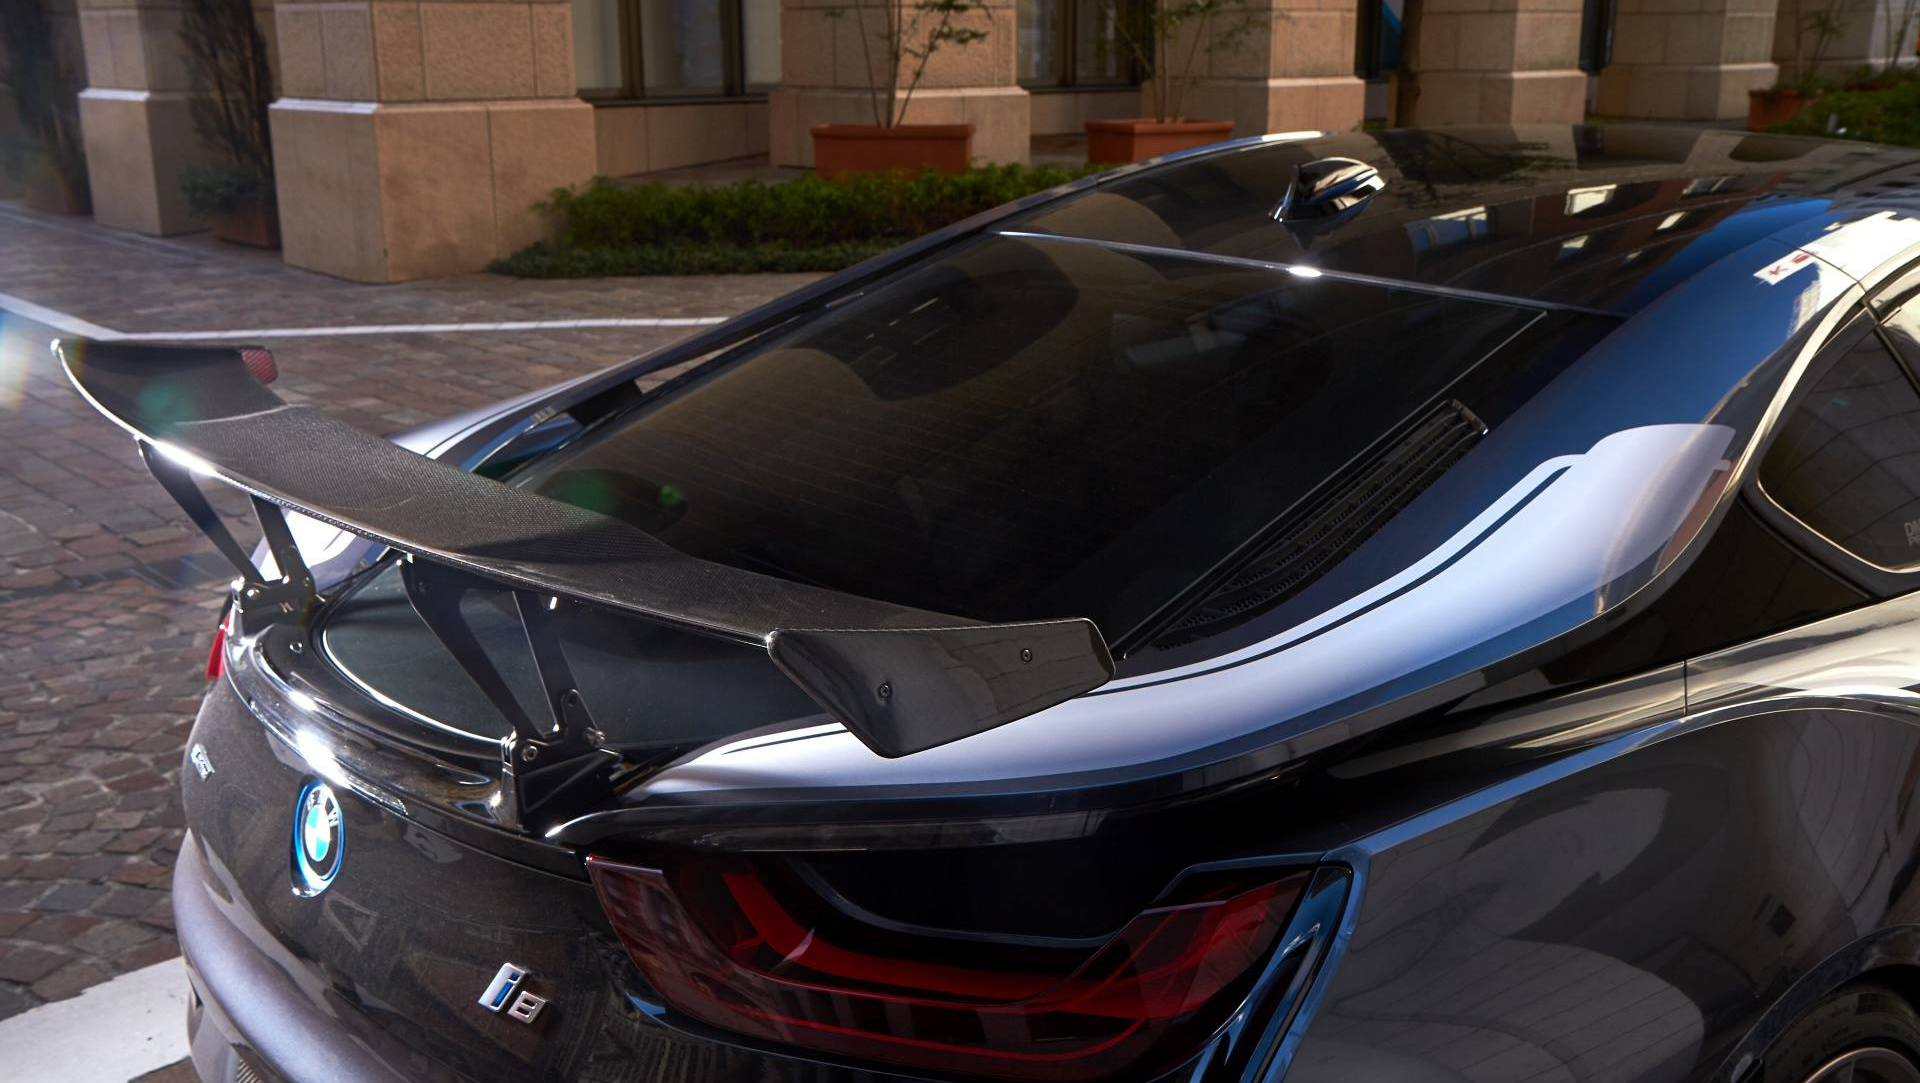 Japan S 3d Design Gives Bmw I8 A Racier Makeover Auto Moto Japan